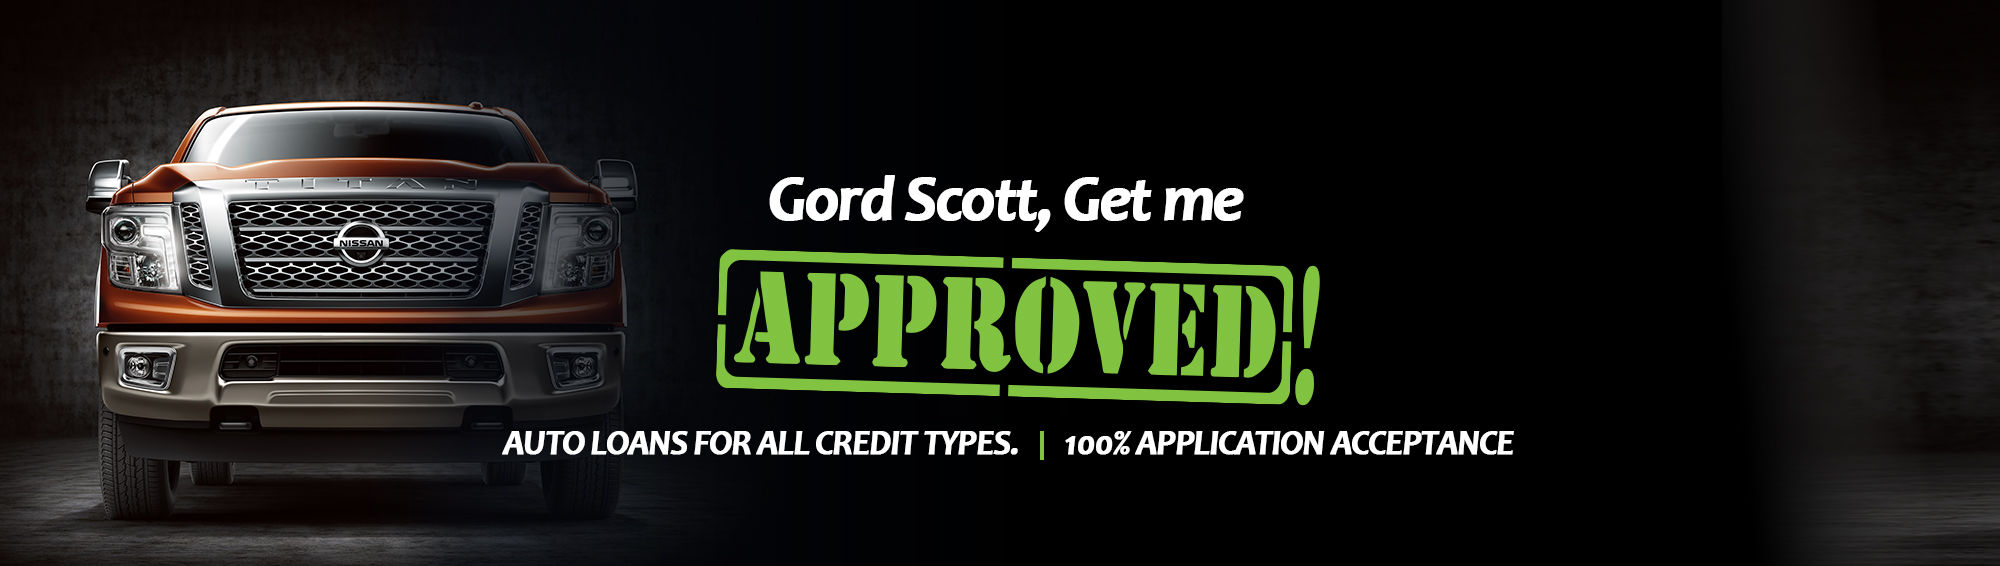 Get me approved! Nissan